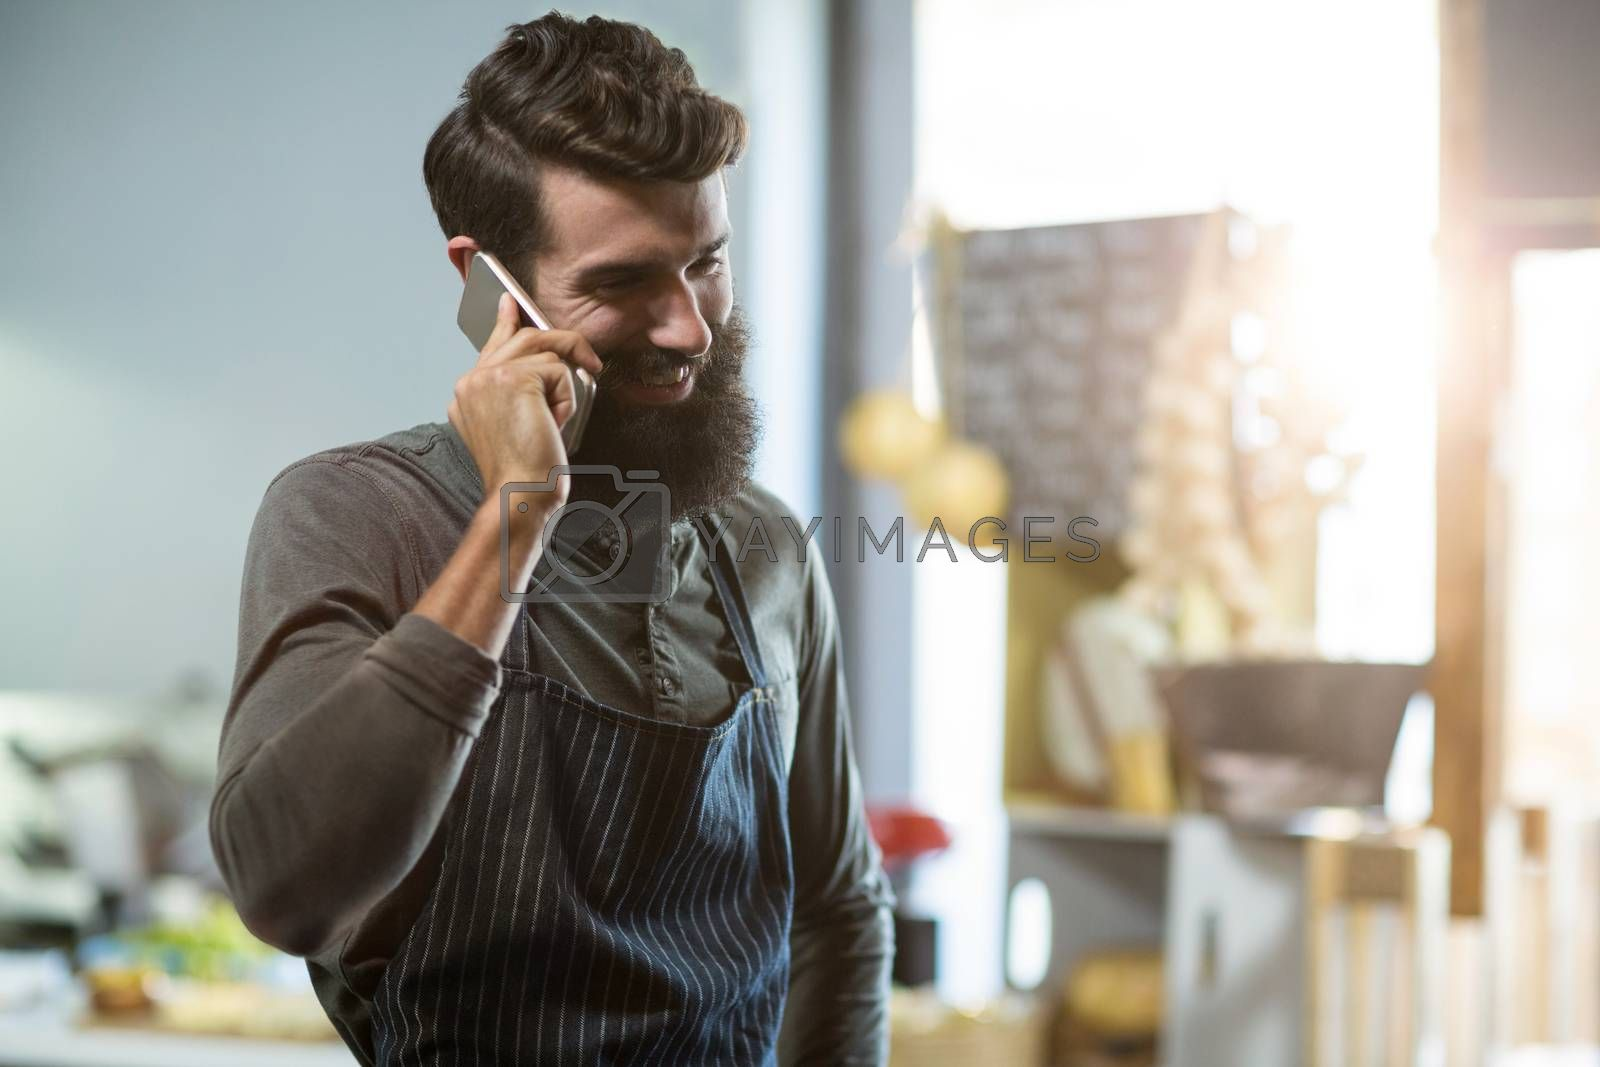 Salesman talking on mobile phone at counter in grocery shop